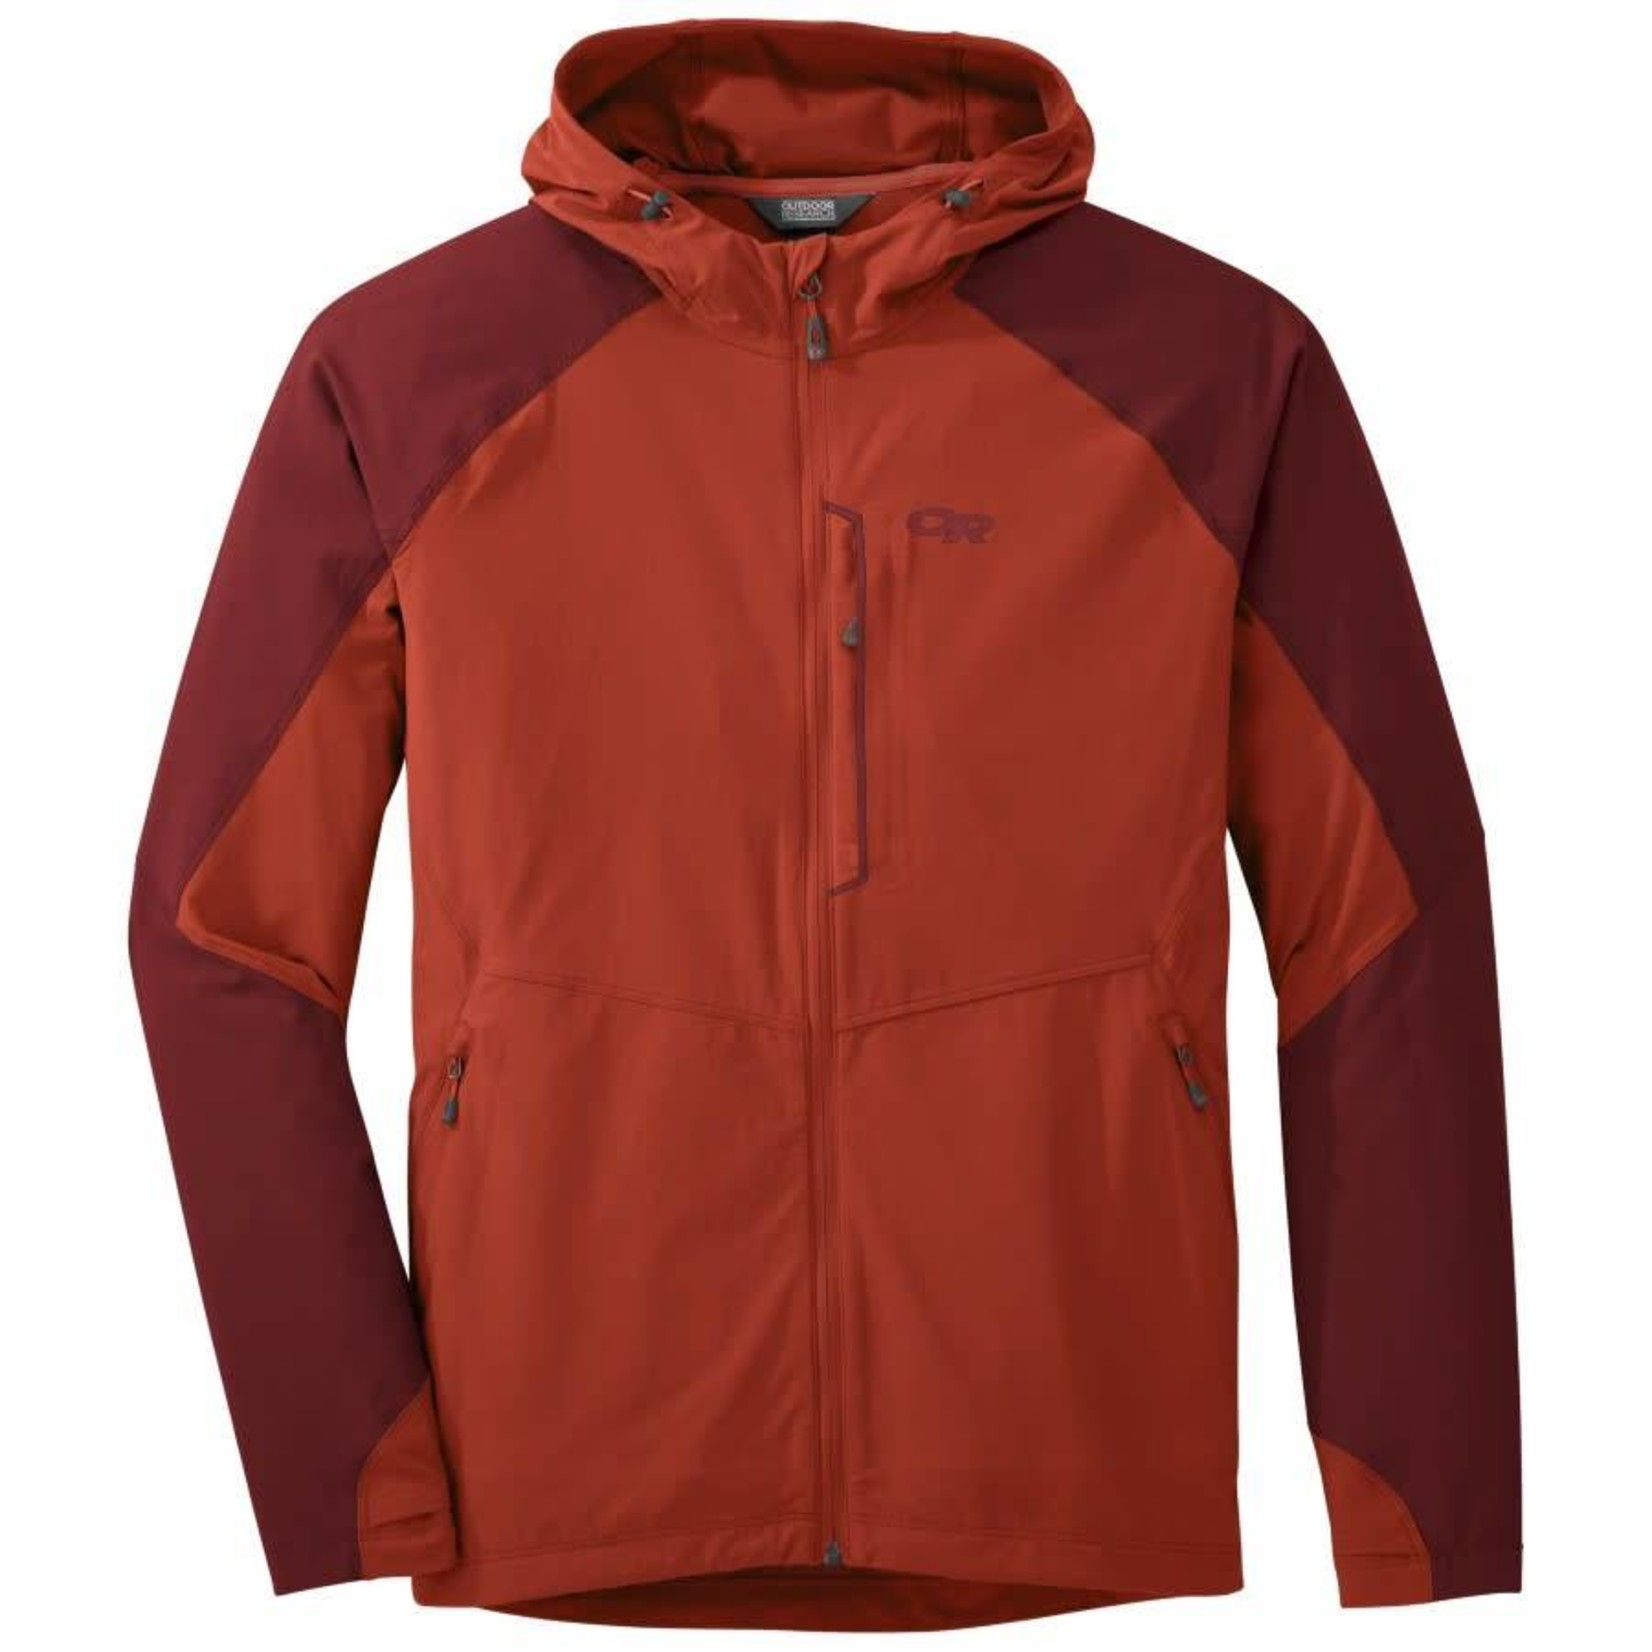 Outdoor Research Manteau Outdoor Research Ferrosi Hoody - Homme